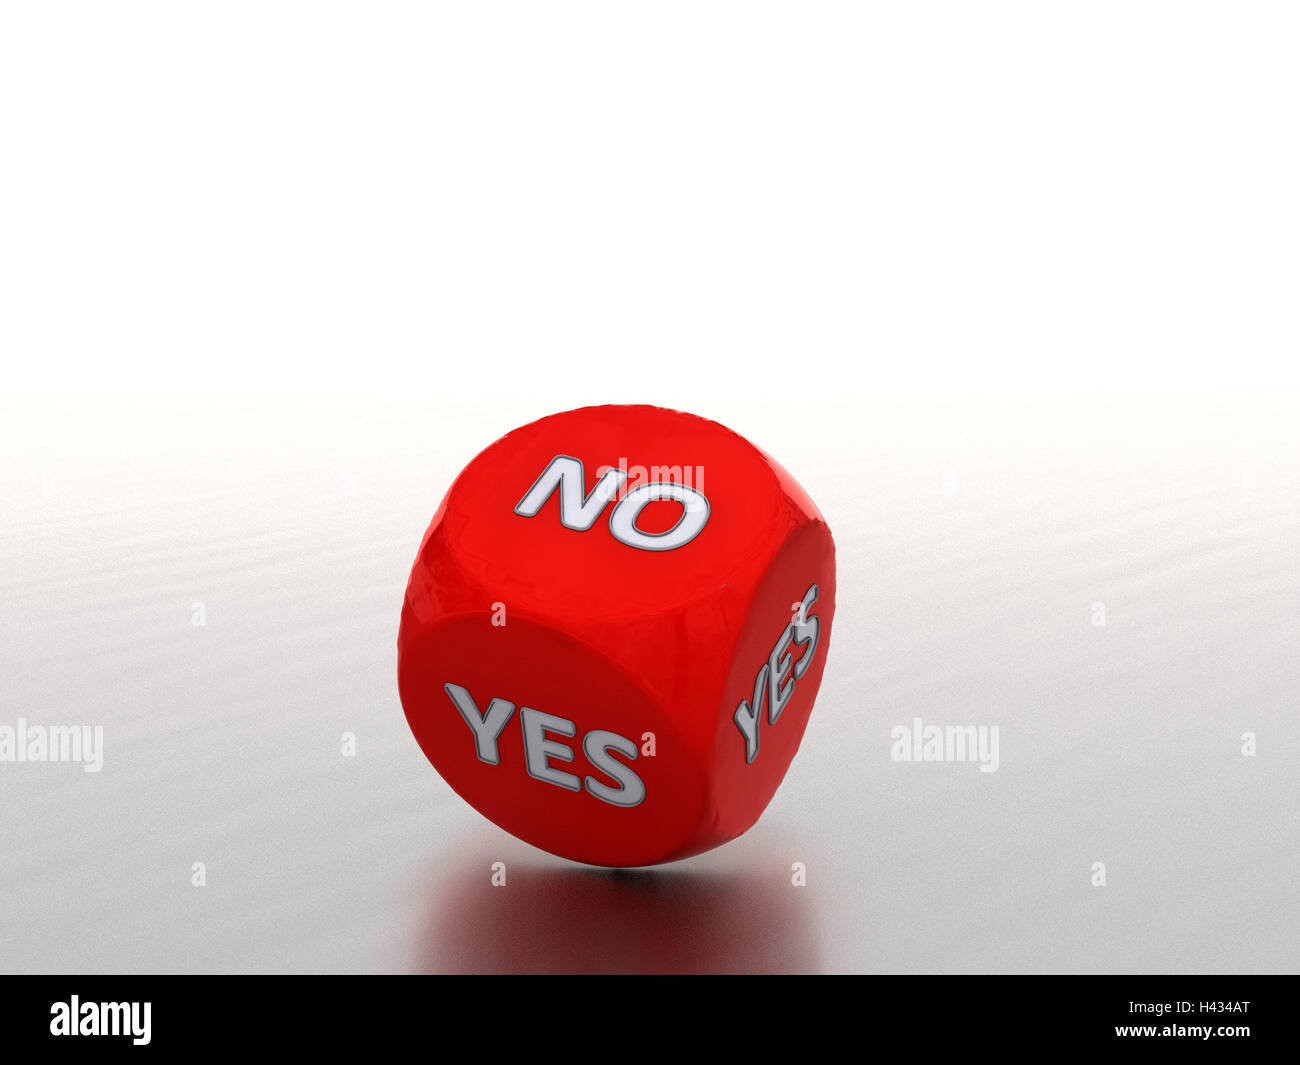 Cubes, yes, no, computer graphics, game cube, red, decision, decision help, help, chance, throw dice, yes, no, 3d - Stock Image